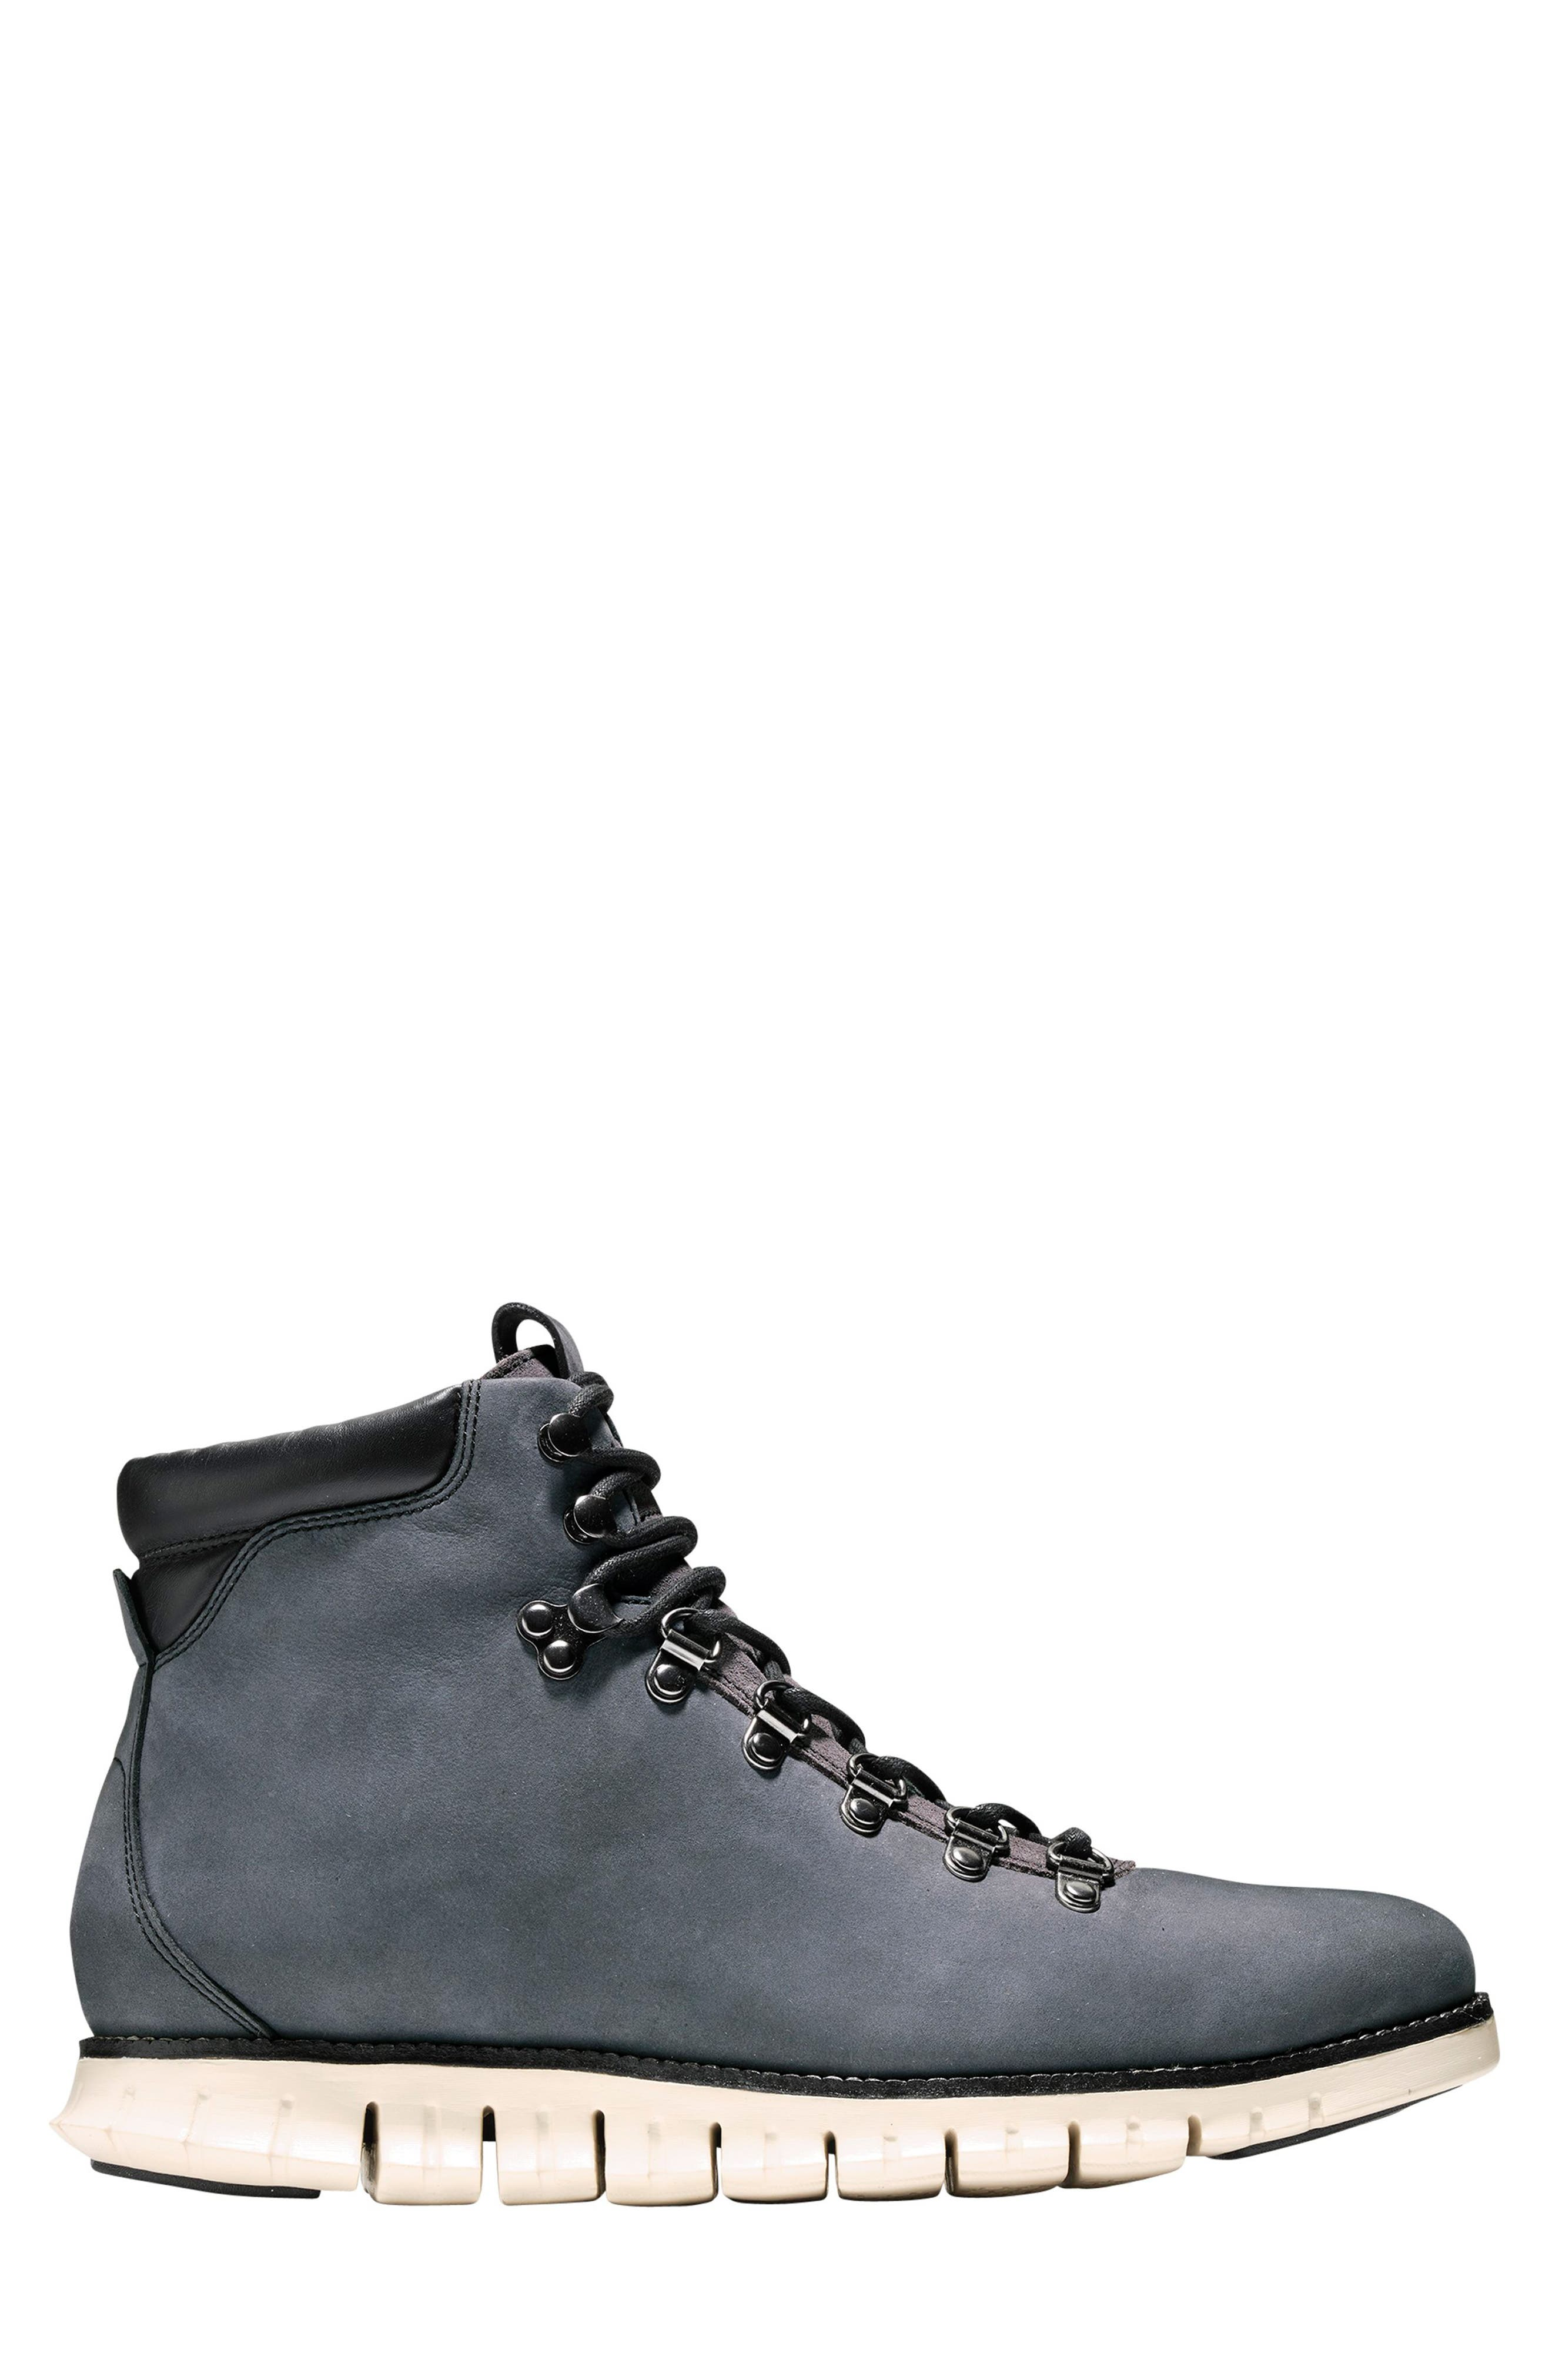 ZeroGrand Water Resistant Hiker Boot,                             Alternate thumbnail 3, color,                             GREY/ IVY LEATHER